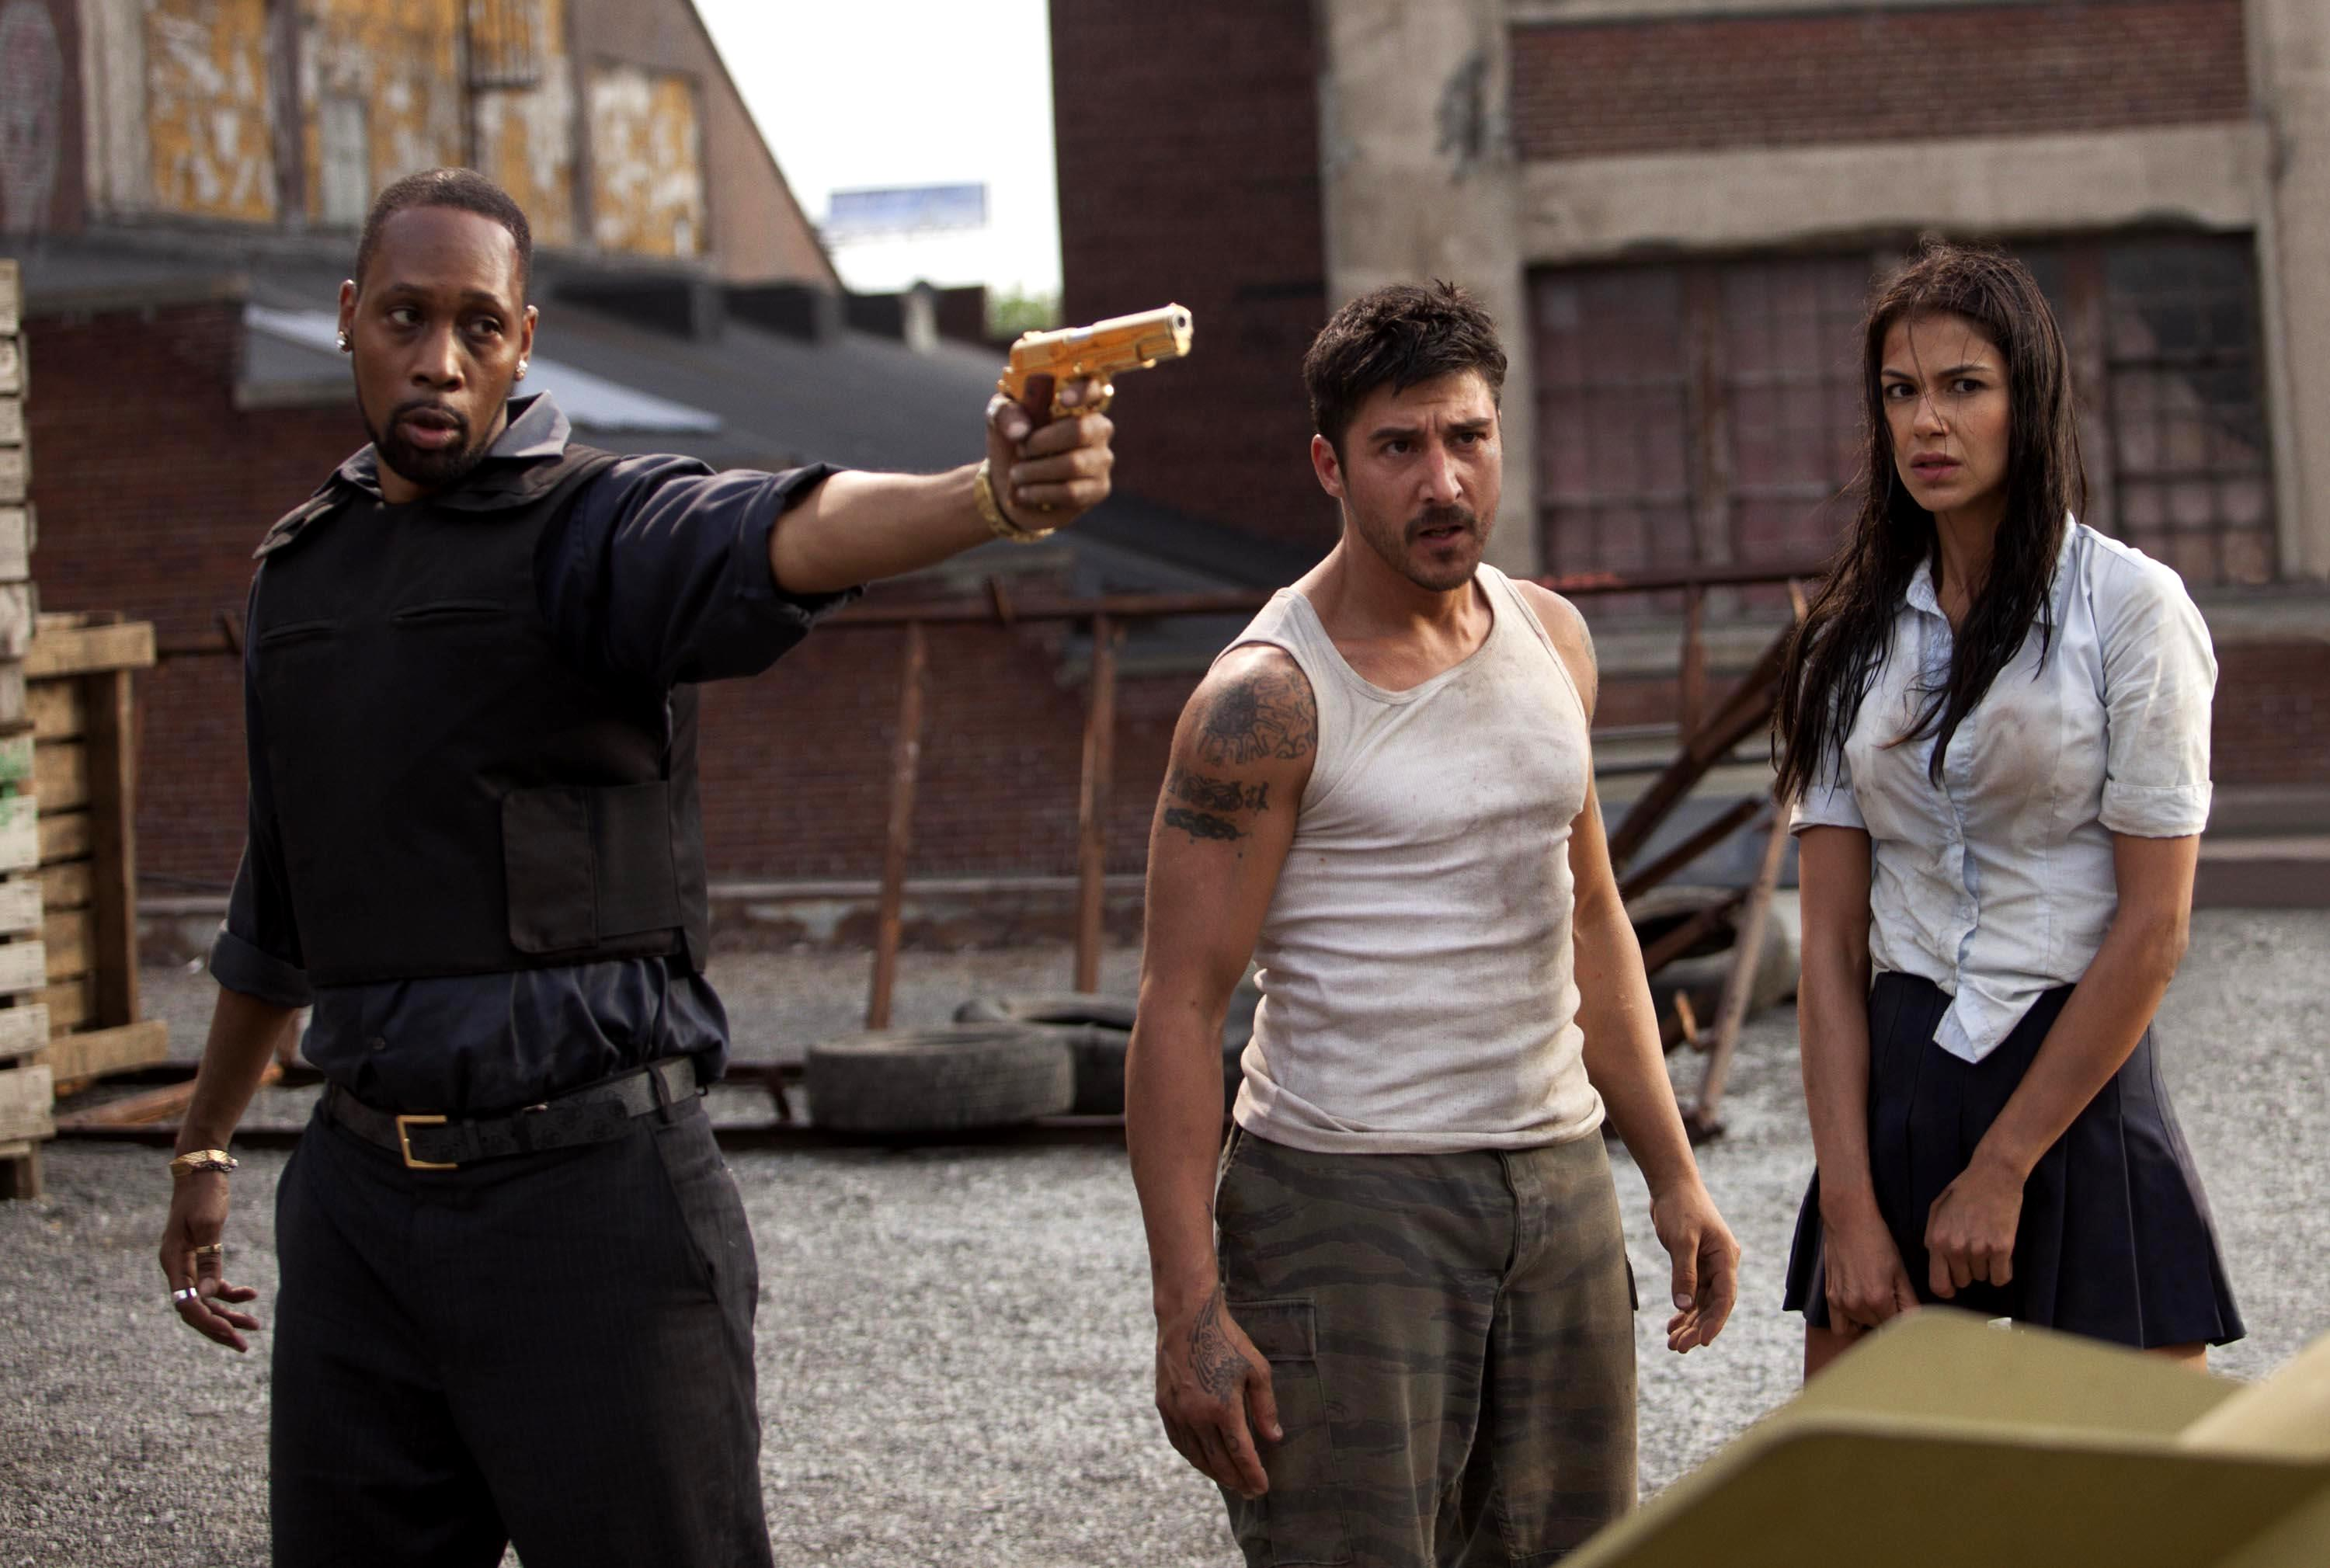 (l to r) Gang leader RZA, David Belle and girlfriend Catalina Denis in Brick Mansions (2014)